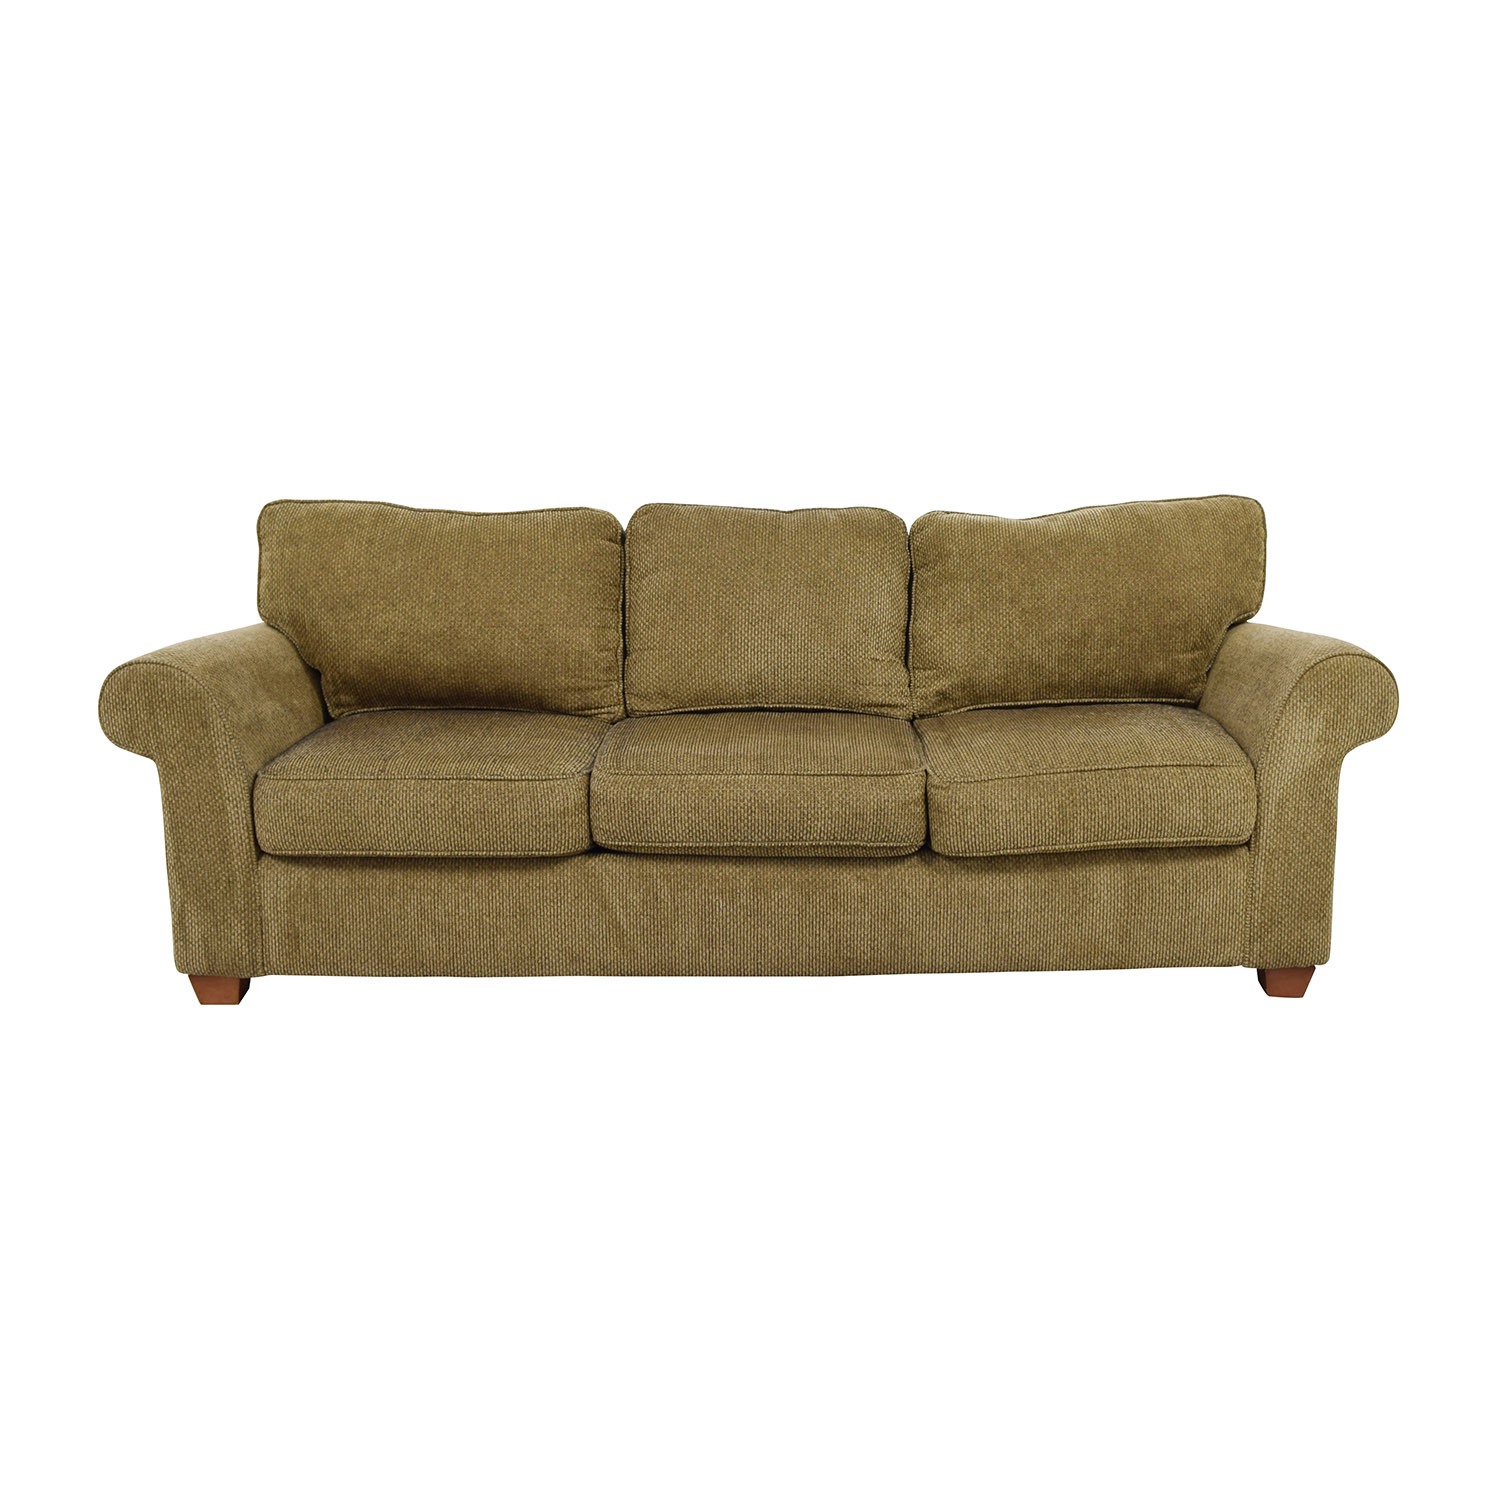 Bloomingdales Bloomingdales Beige Tweed Fabric Sofa price